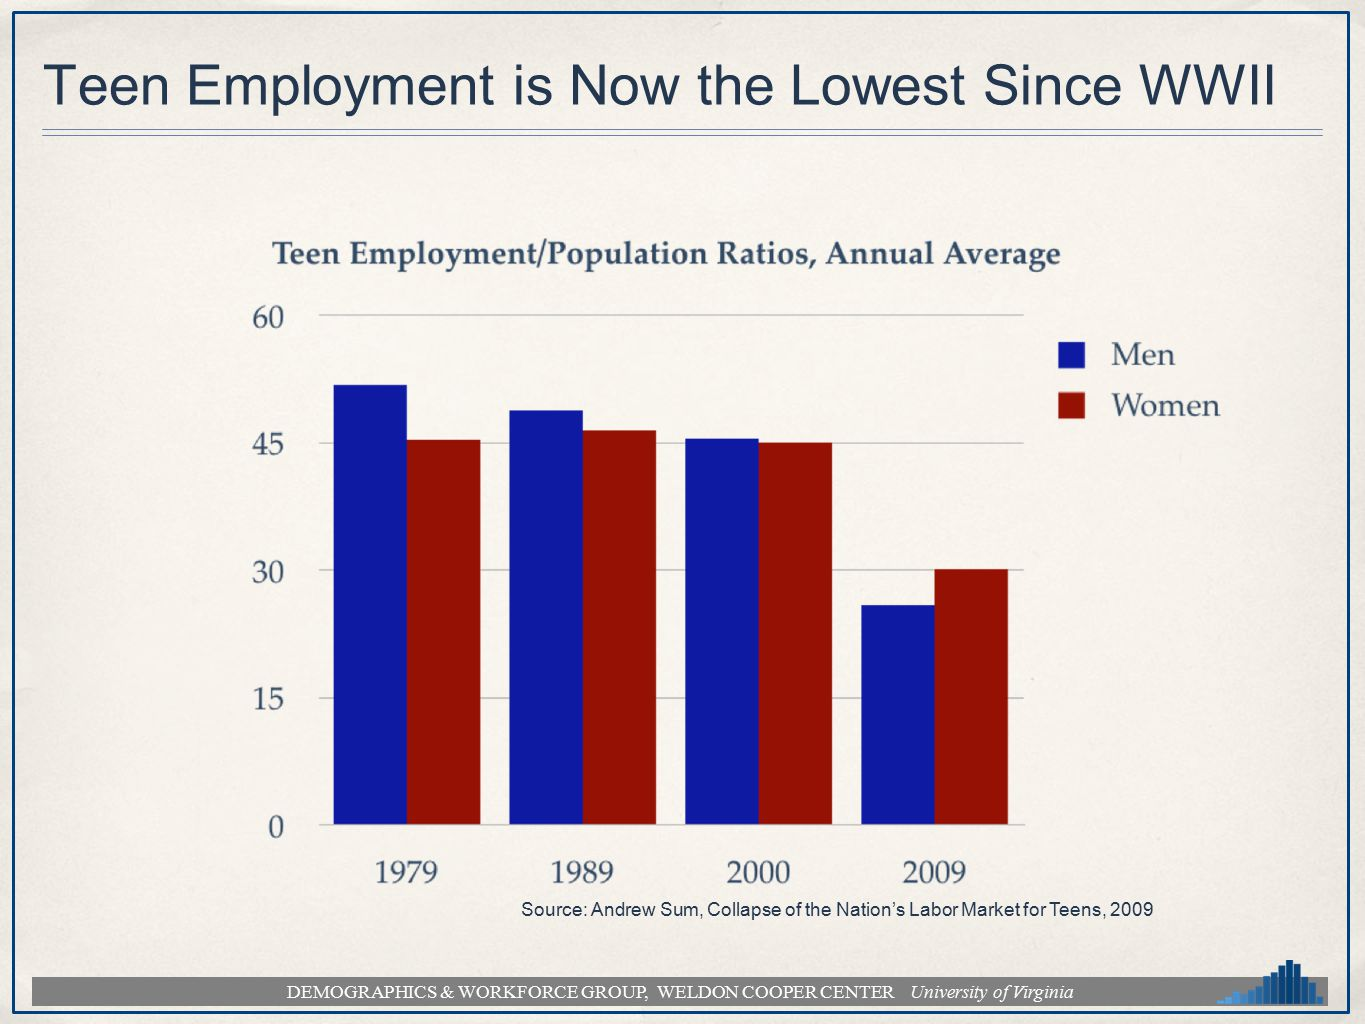 DEMOGRAPHICS & WORKFORCE GROUP, WELDON COOPER CENTER University of Virginia Teen Employment is Now the Lowest Since WWII Source: Andrew Sum, Collapse of the Nation's Labor Market for Teens, 2009